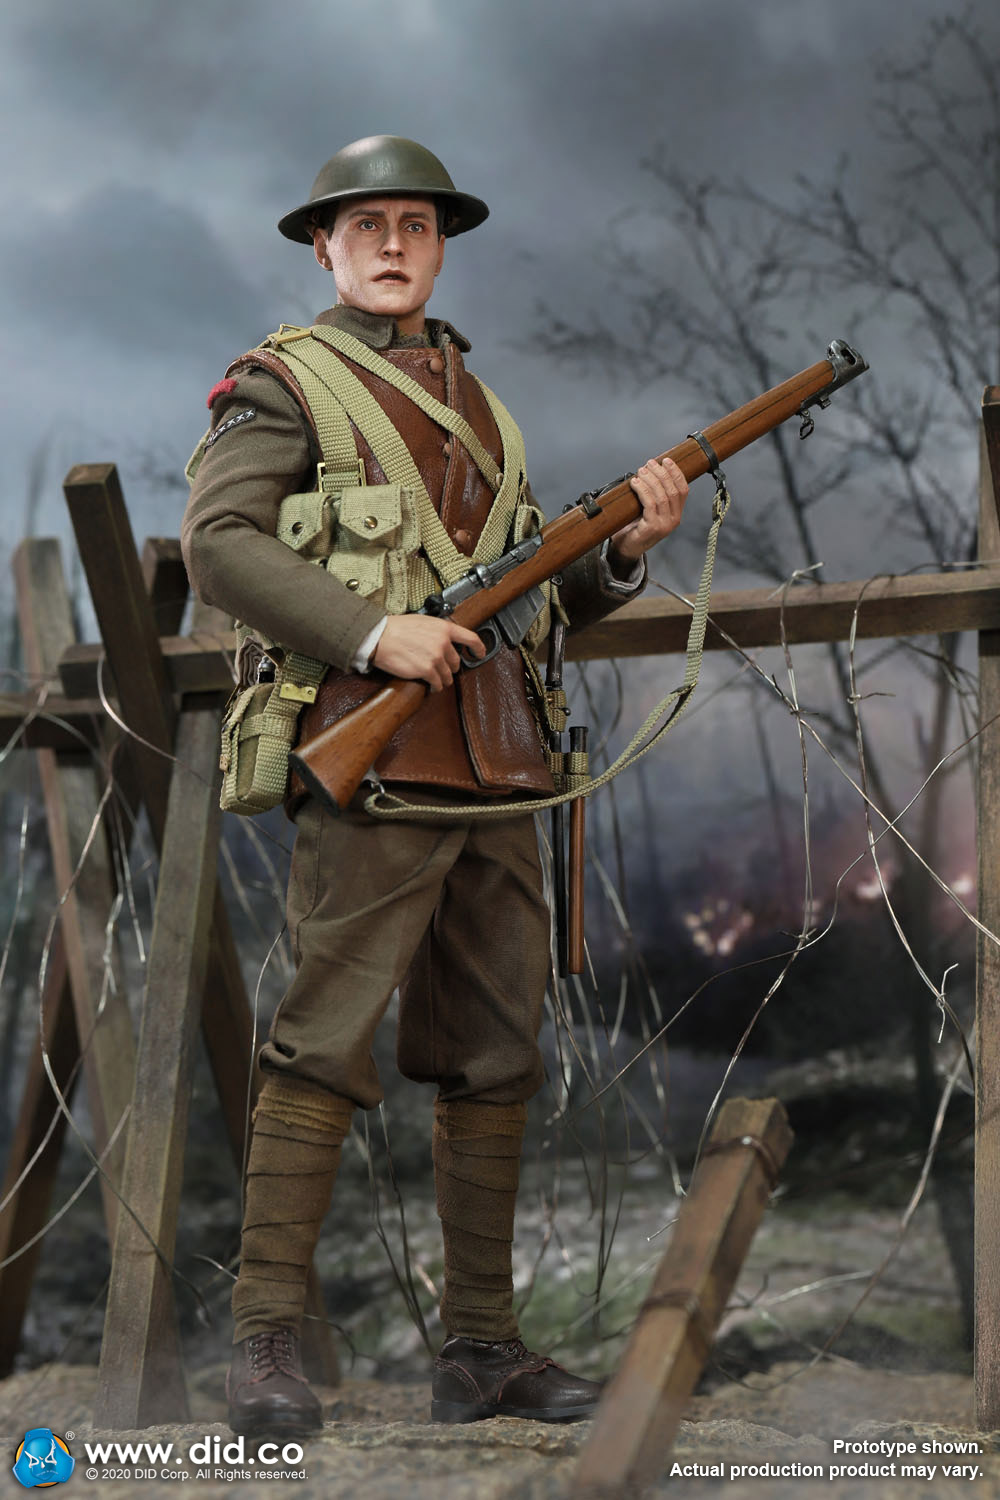 military - NEW PRODUCT: DiD: B11011 WWI British Infantry Lance Corporal William & Trench Diorama Set (UPDATED INFORMATION) 15b8f510